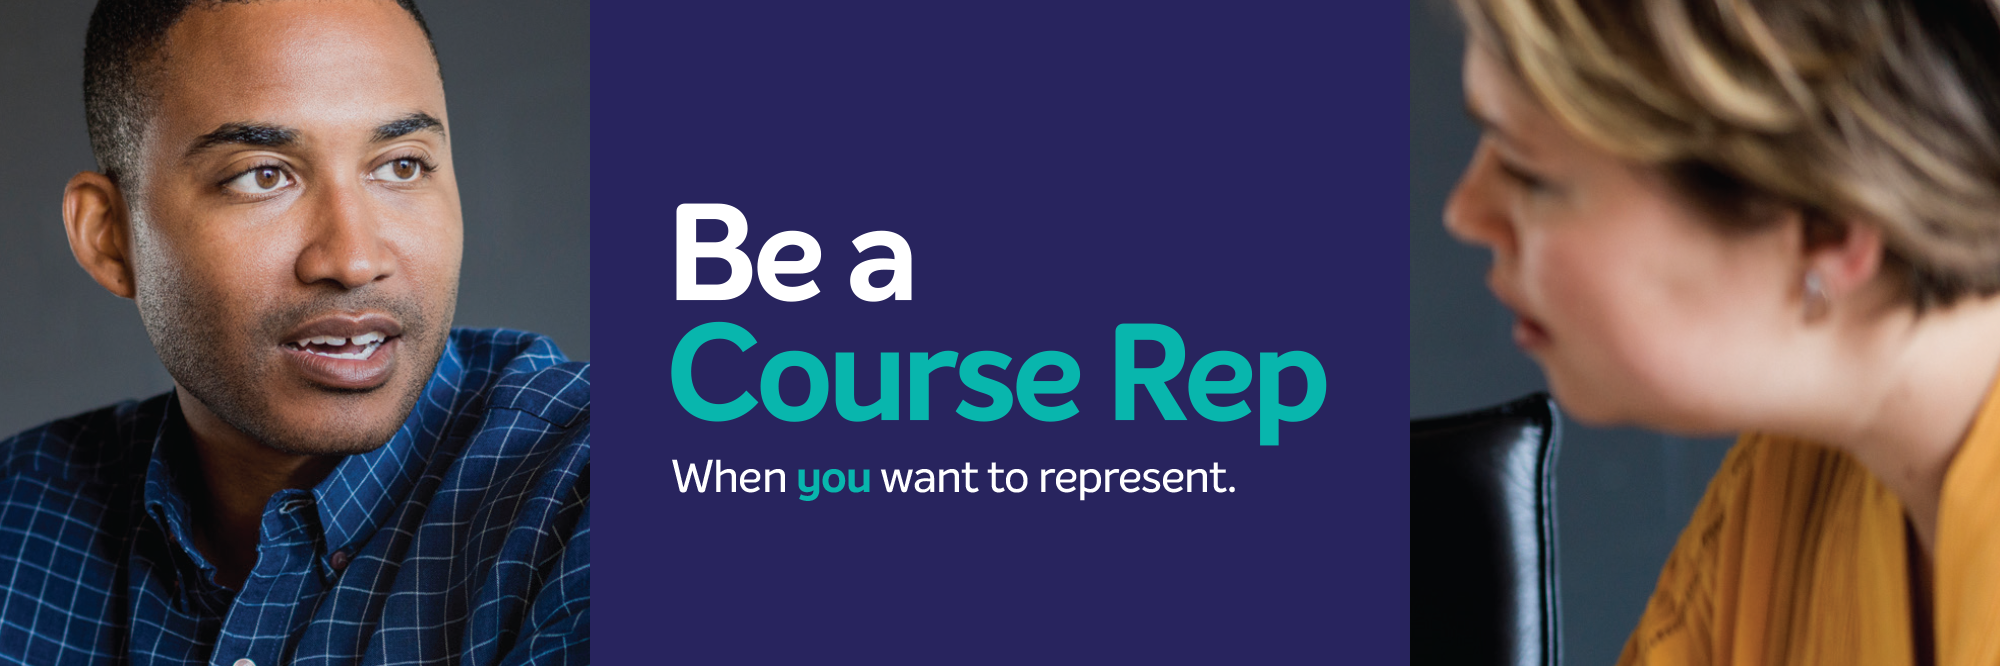 Course rep homepage scroller